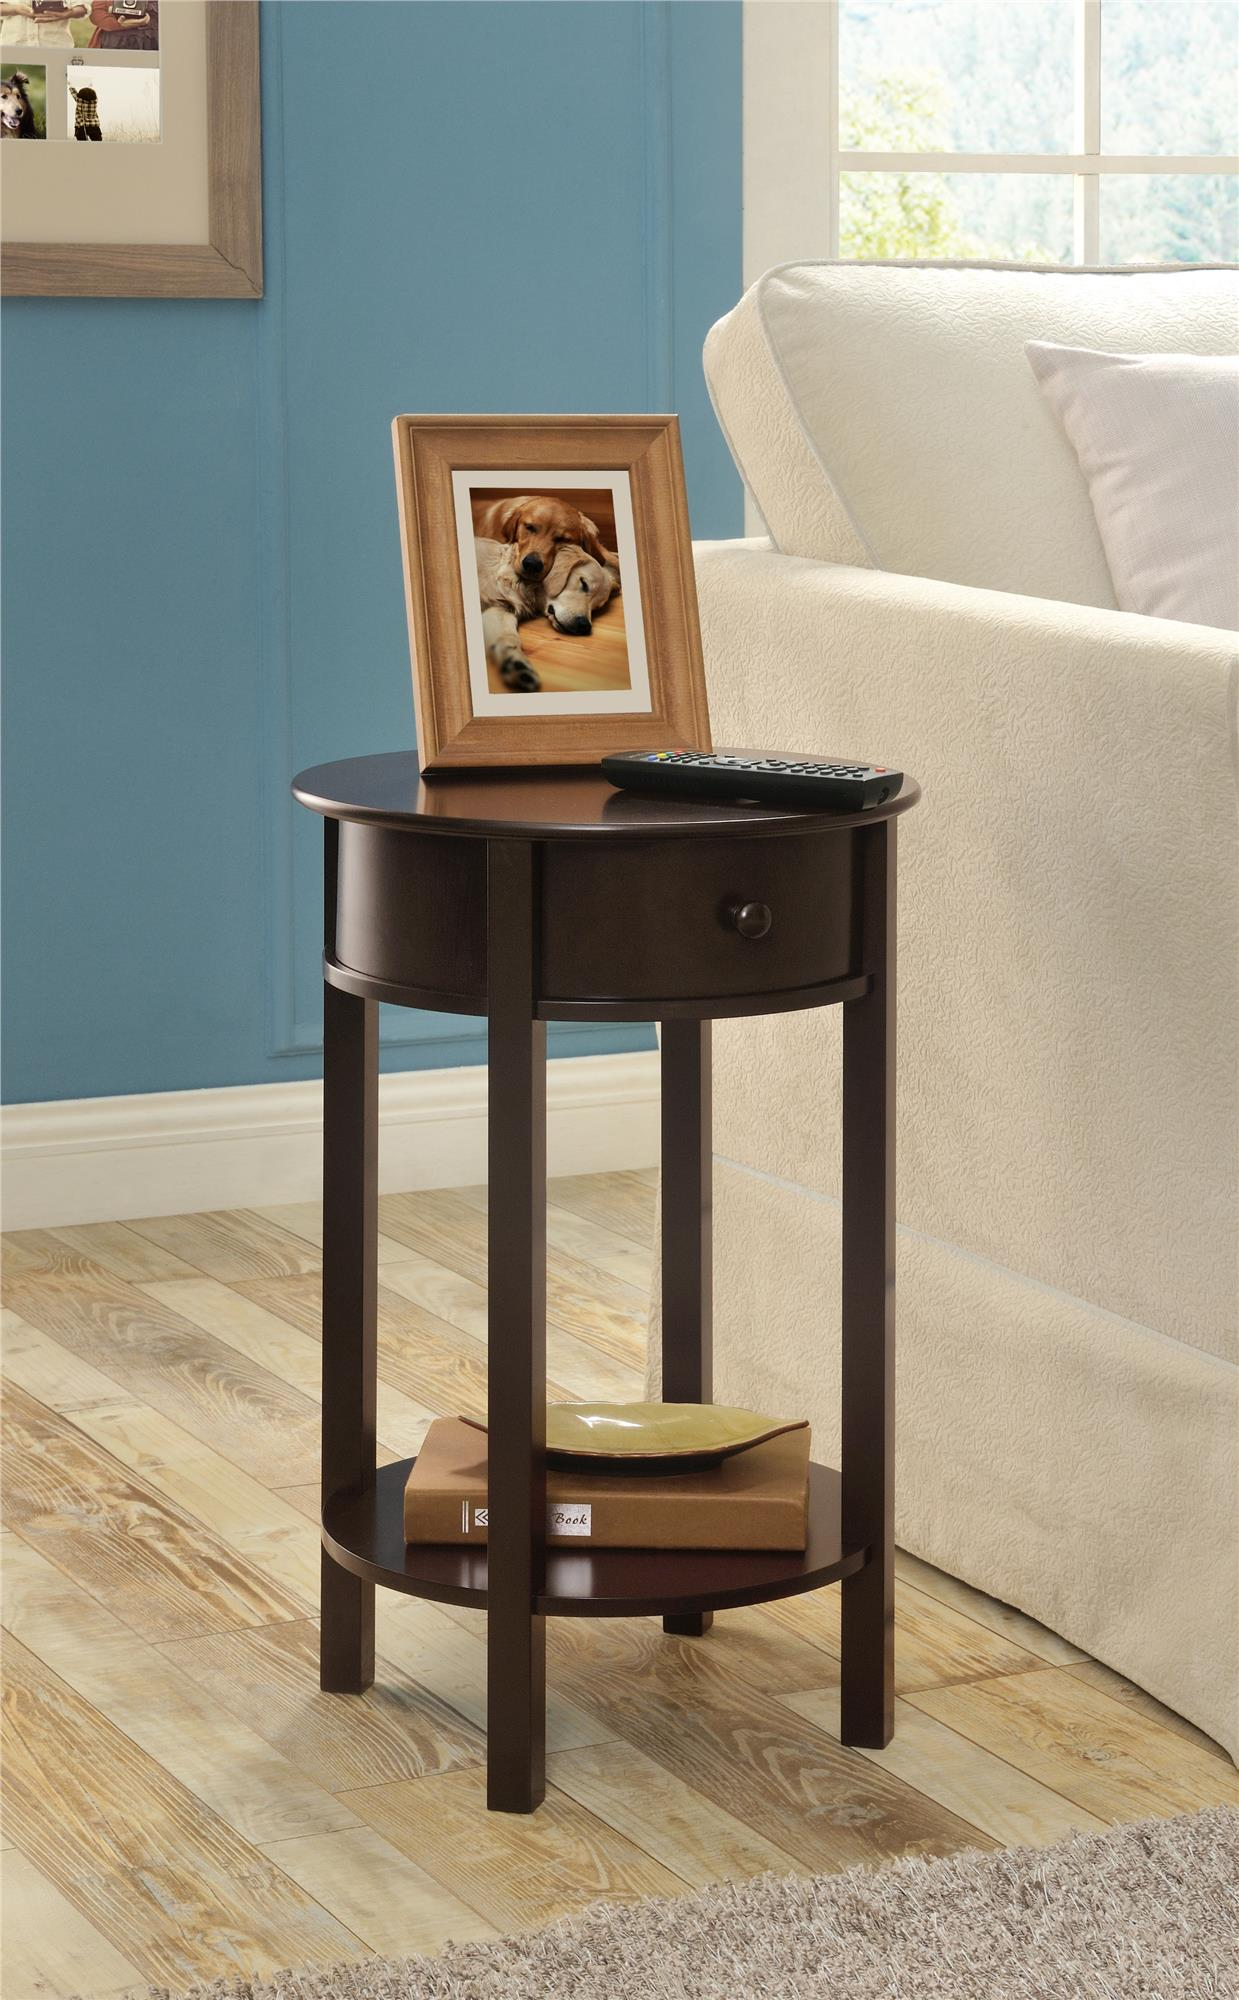 ameriwood home tipton round accent table espresso small with drawer white trestle dining sauder storage cabinet laminate threshold ramp marble and wood side bunching tables cubes